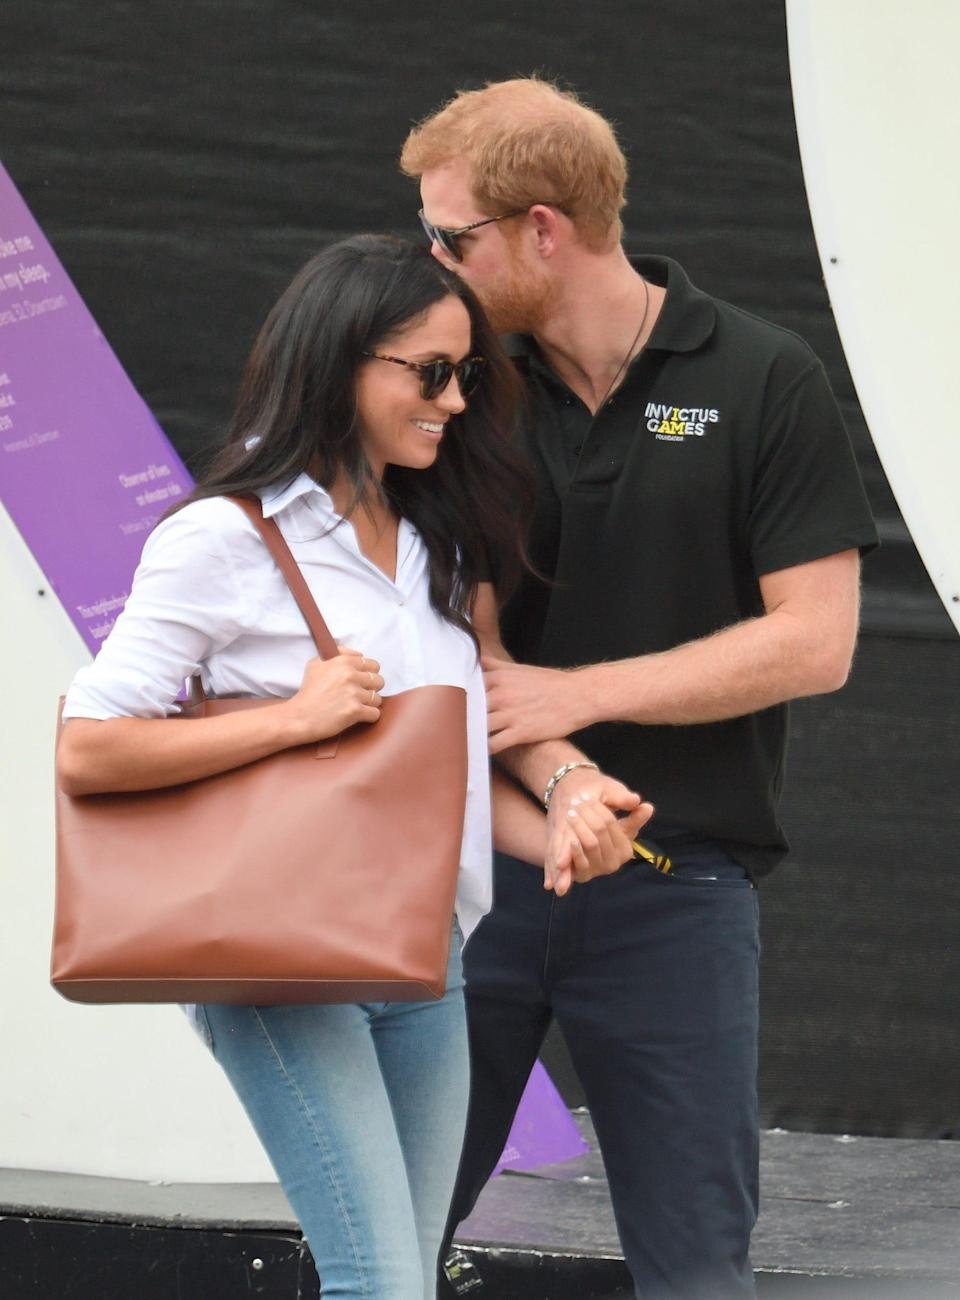 Prince Harry and Meghan Markle in 2017. Harry kisses Meghan on the forehead.